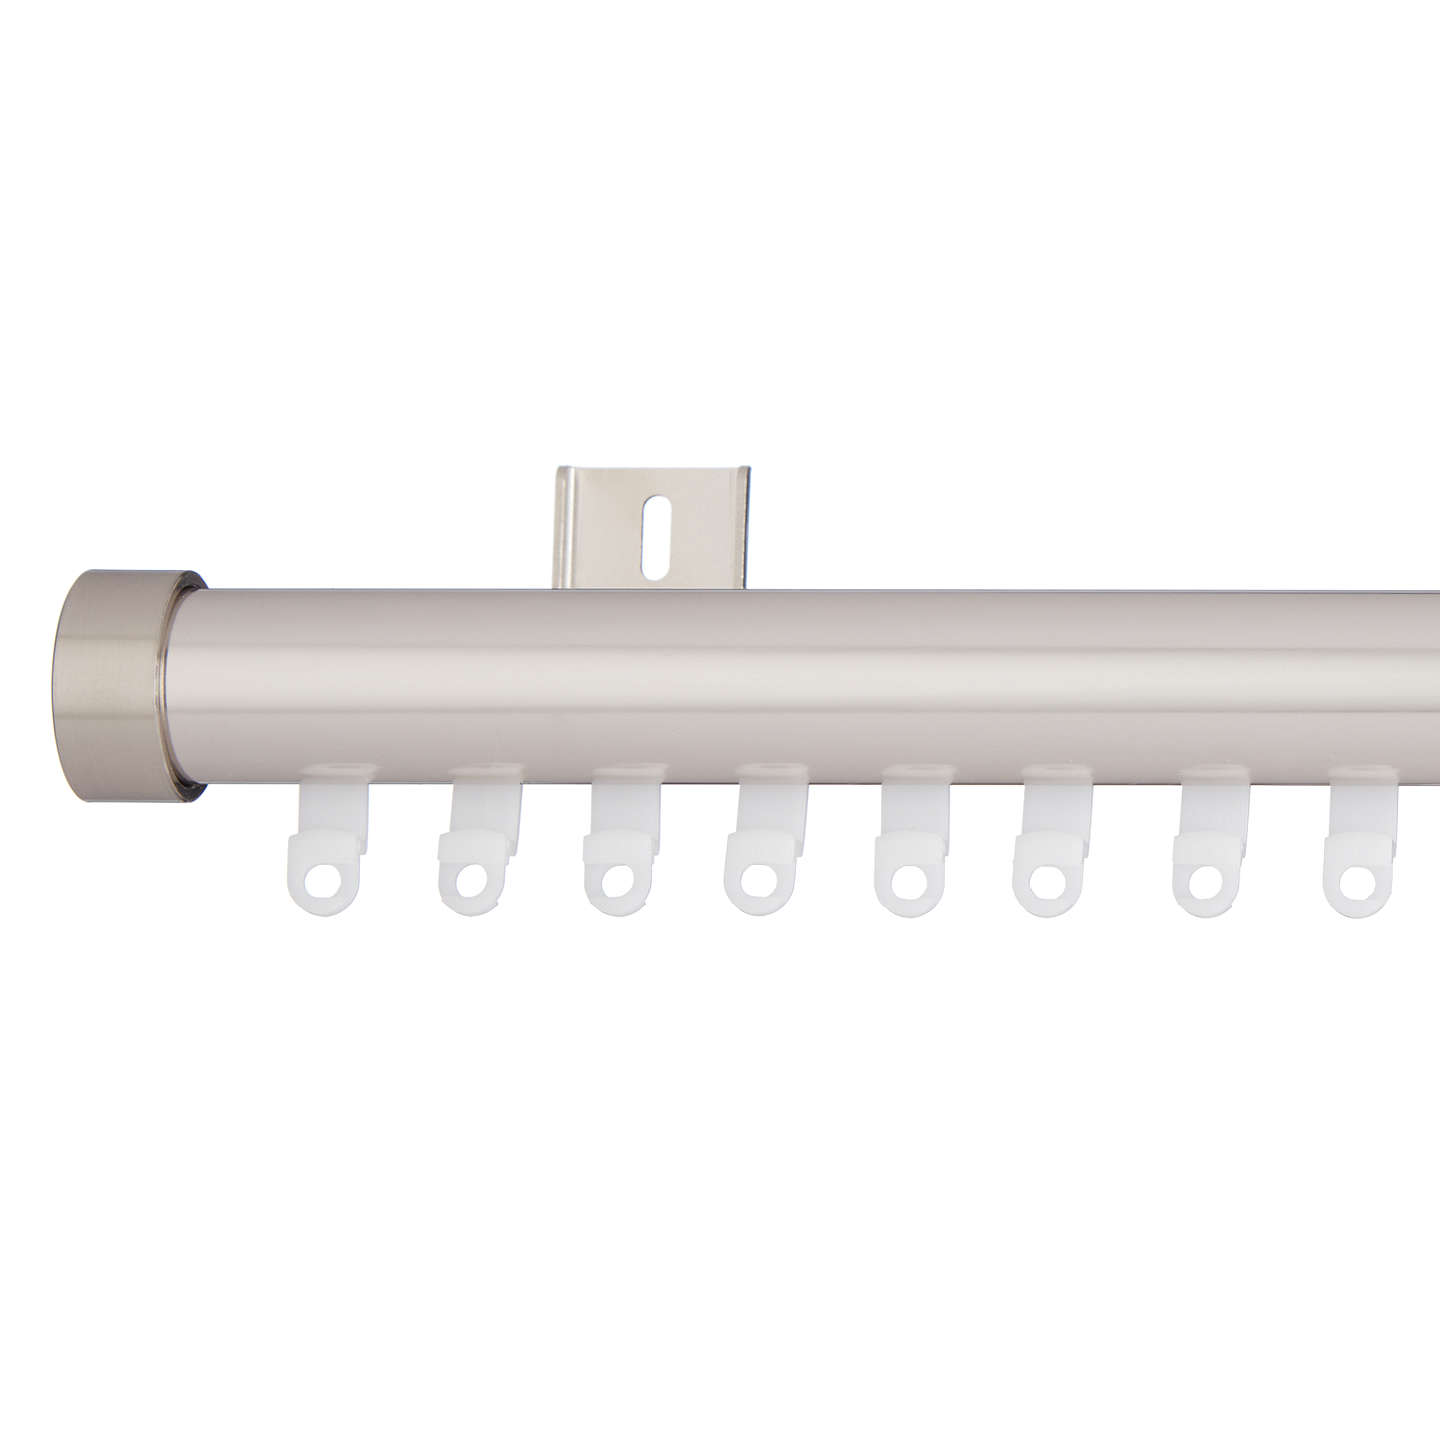 House by john lewis curtain pole track 28mm silver at john lewis buyhouse by john lewis curtain pole track 28mm silver l150cm online at aloadofball Image collections